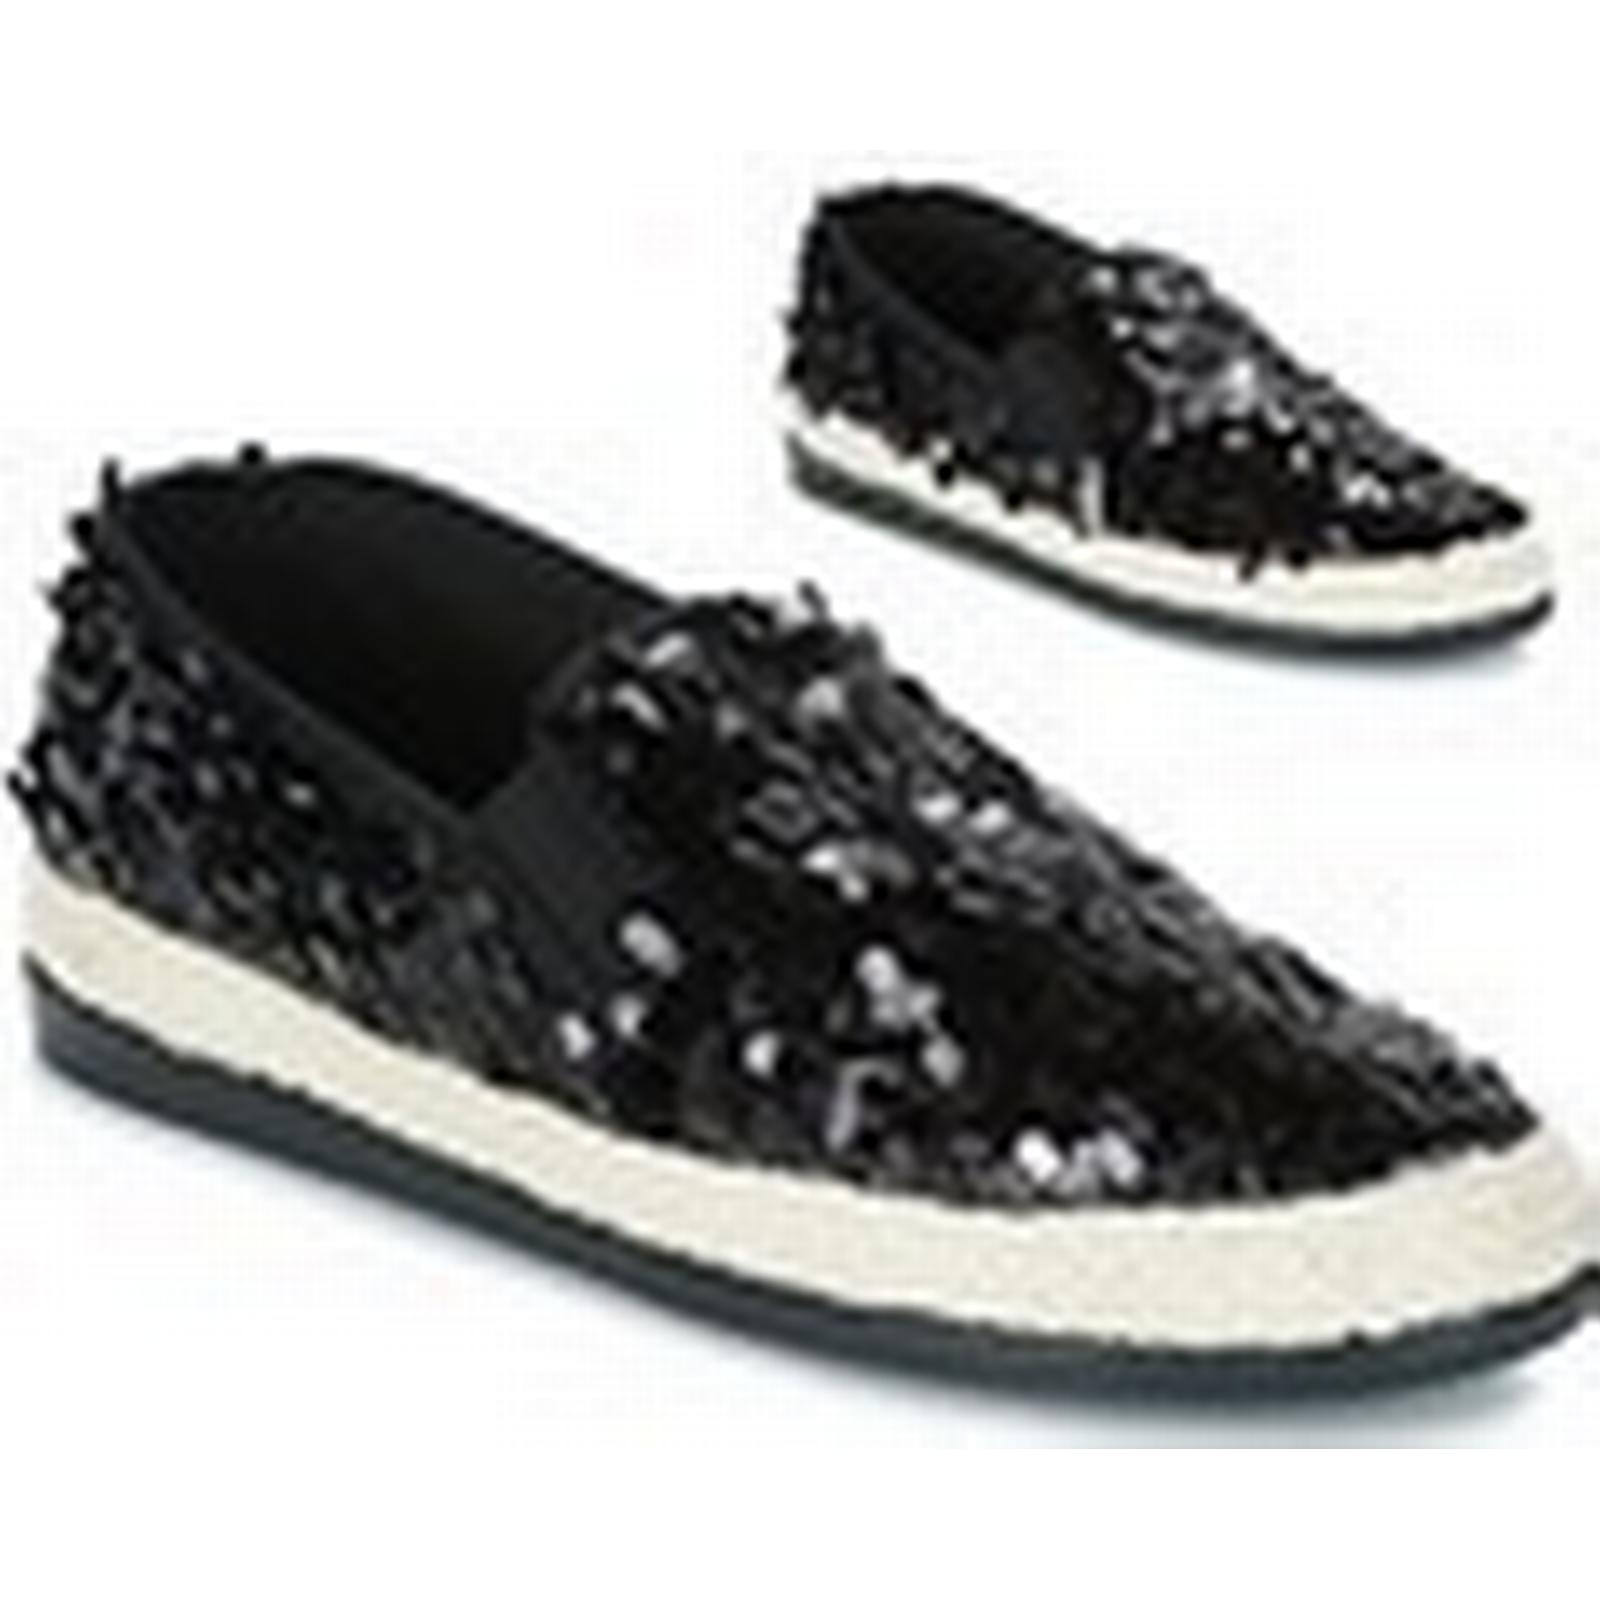 9f912ab1541f Spiral VIRGINIA women s Espadrilles   Casual Shoes in in in Black 20dcd9